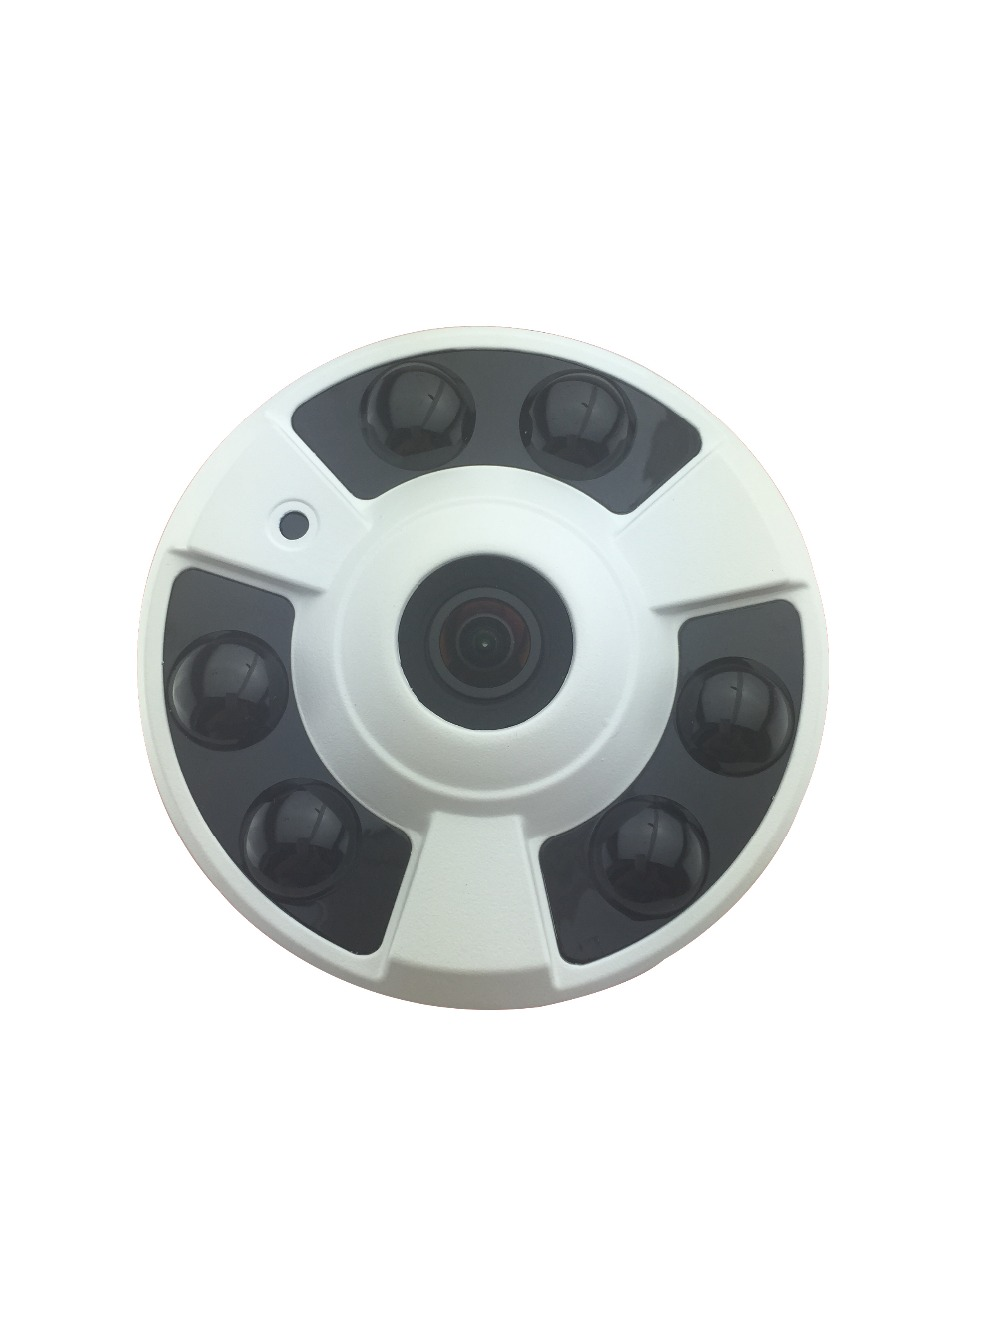 H.265 Audio HD 2.0MP IP Camera Wide Angle Fisheye Lens Indoor Ceiling IR Night Vision Security Monitoring P2P Onivf